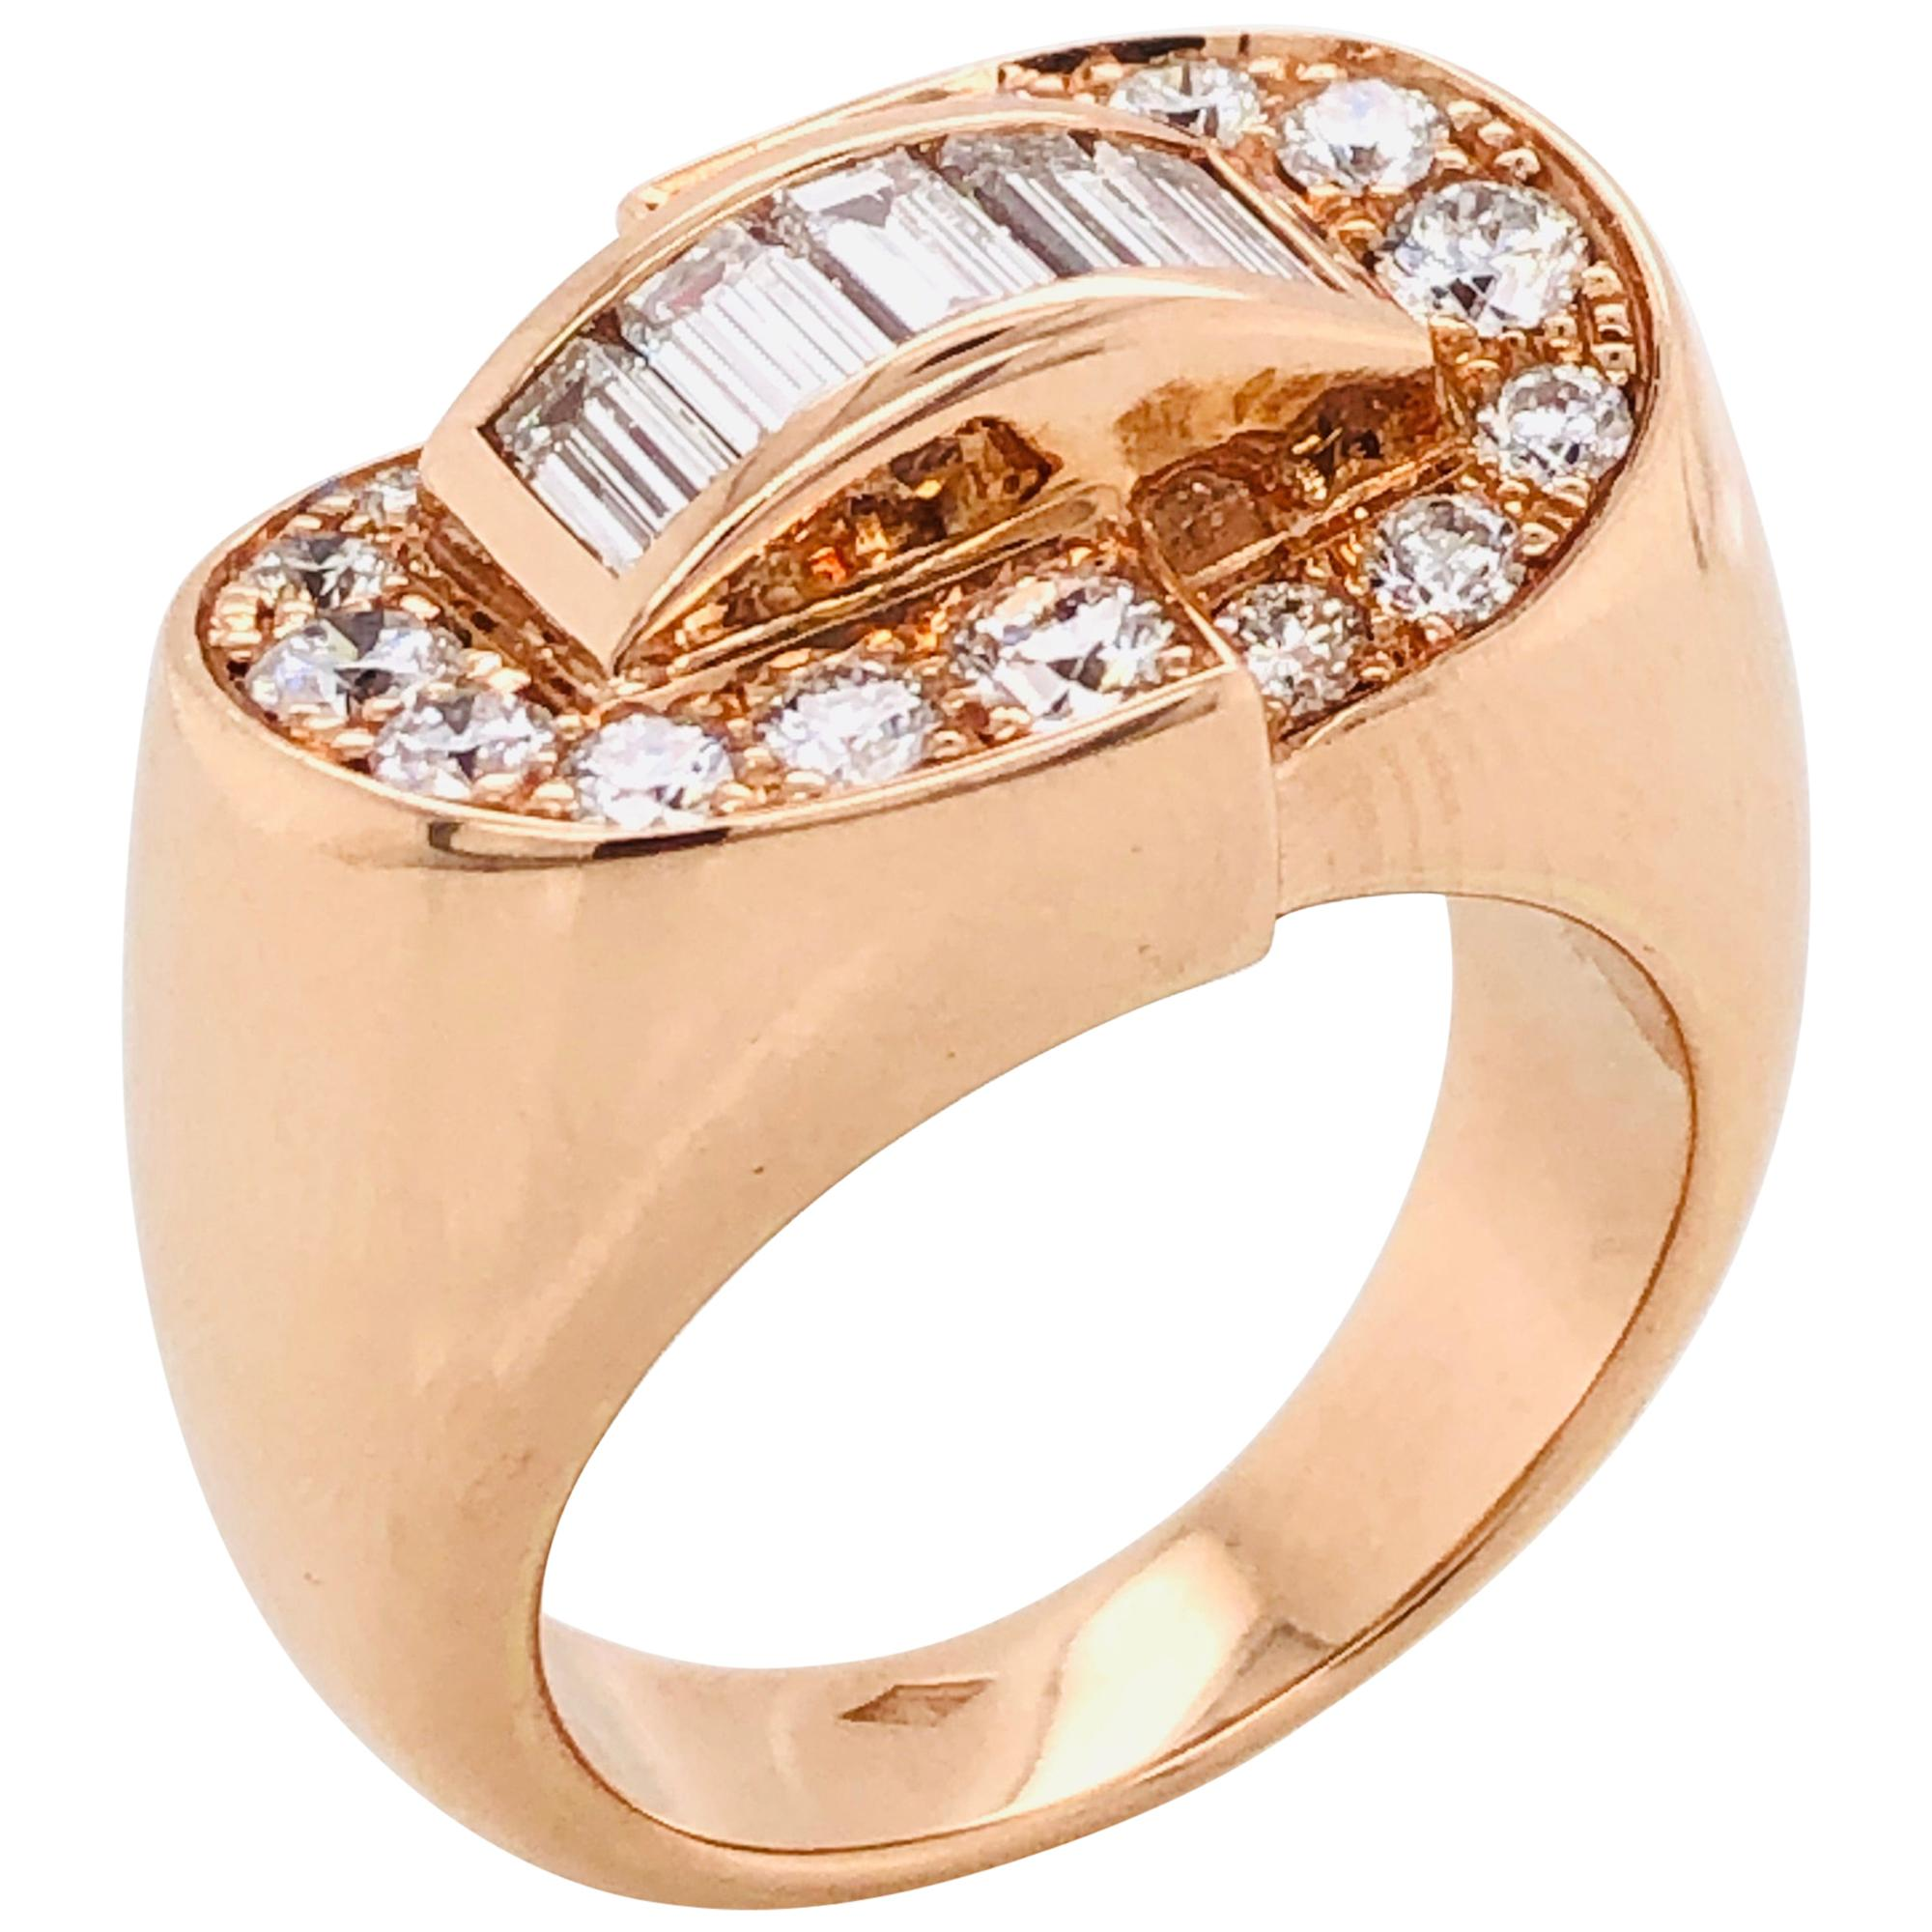 White Diamonds Baguette Cut and Brilliant Cut on Rose Gold 18 Karat Fashion Ring